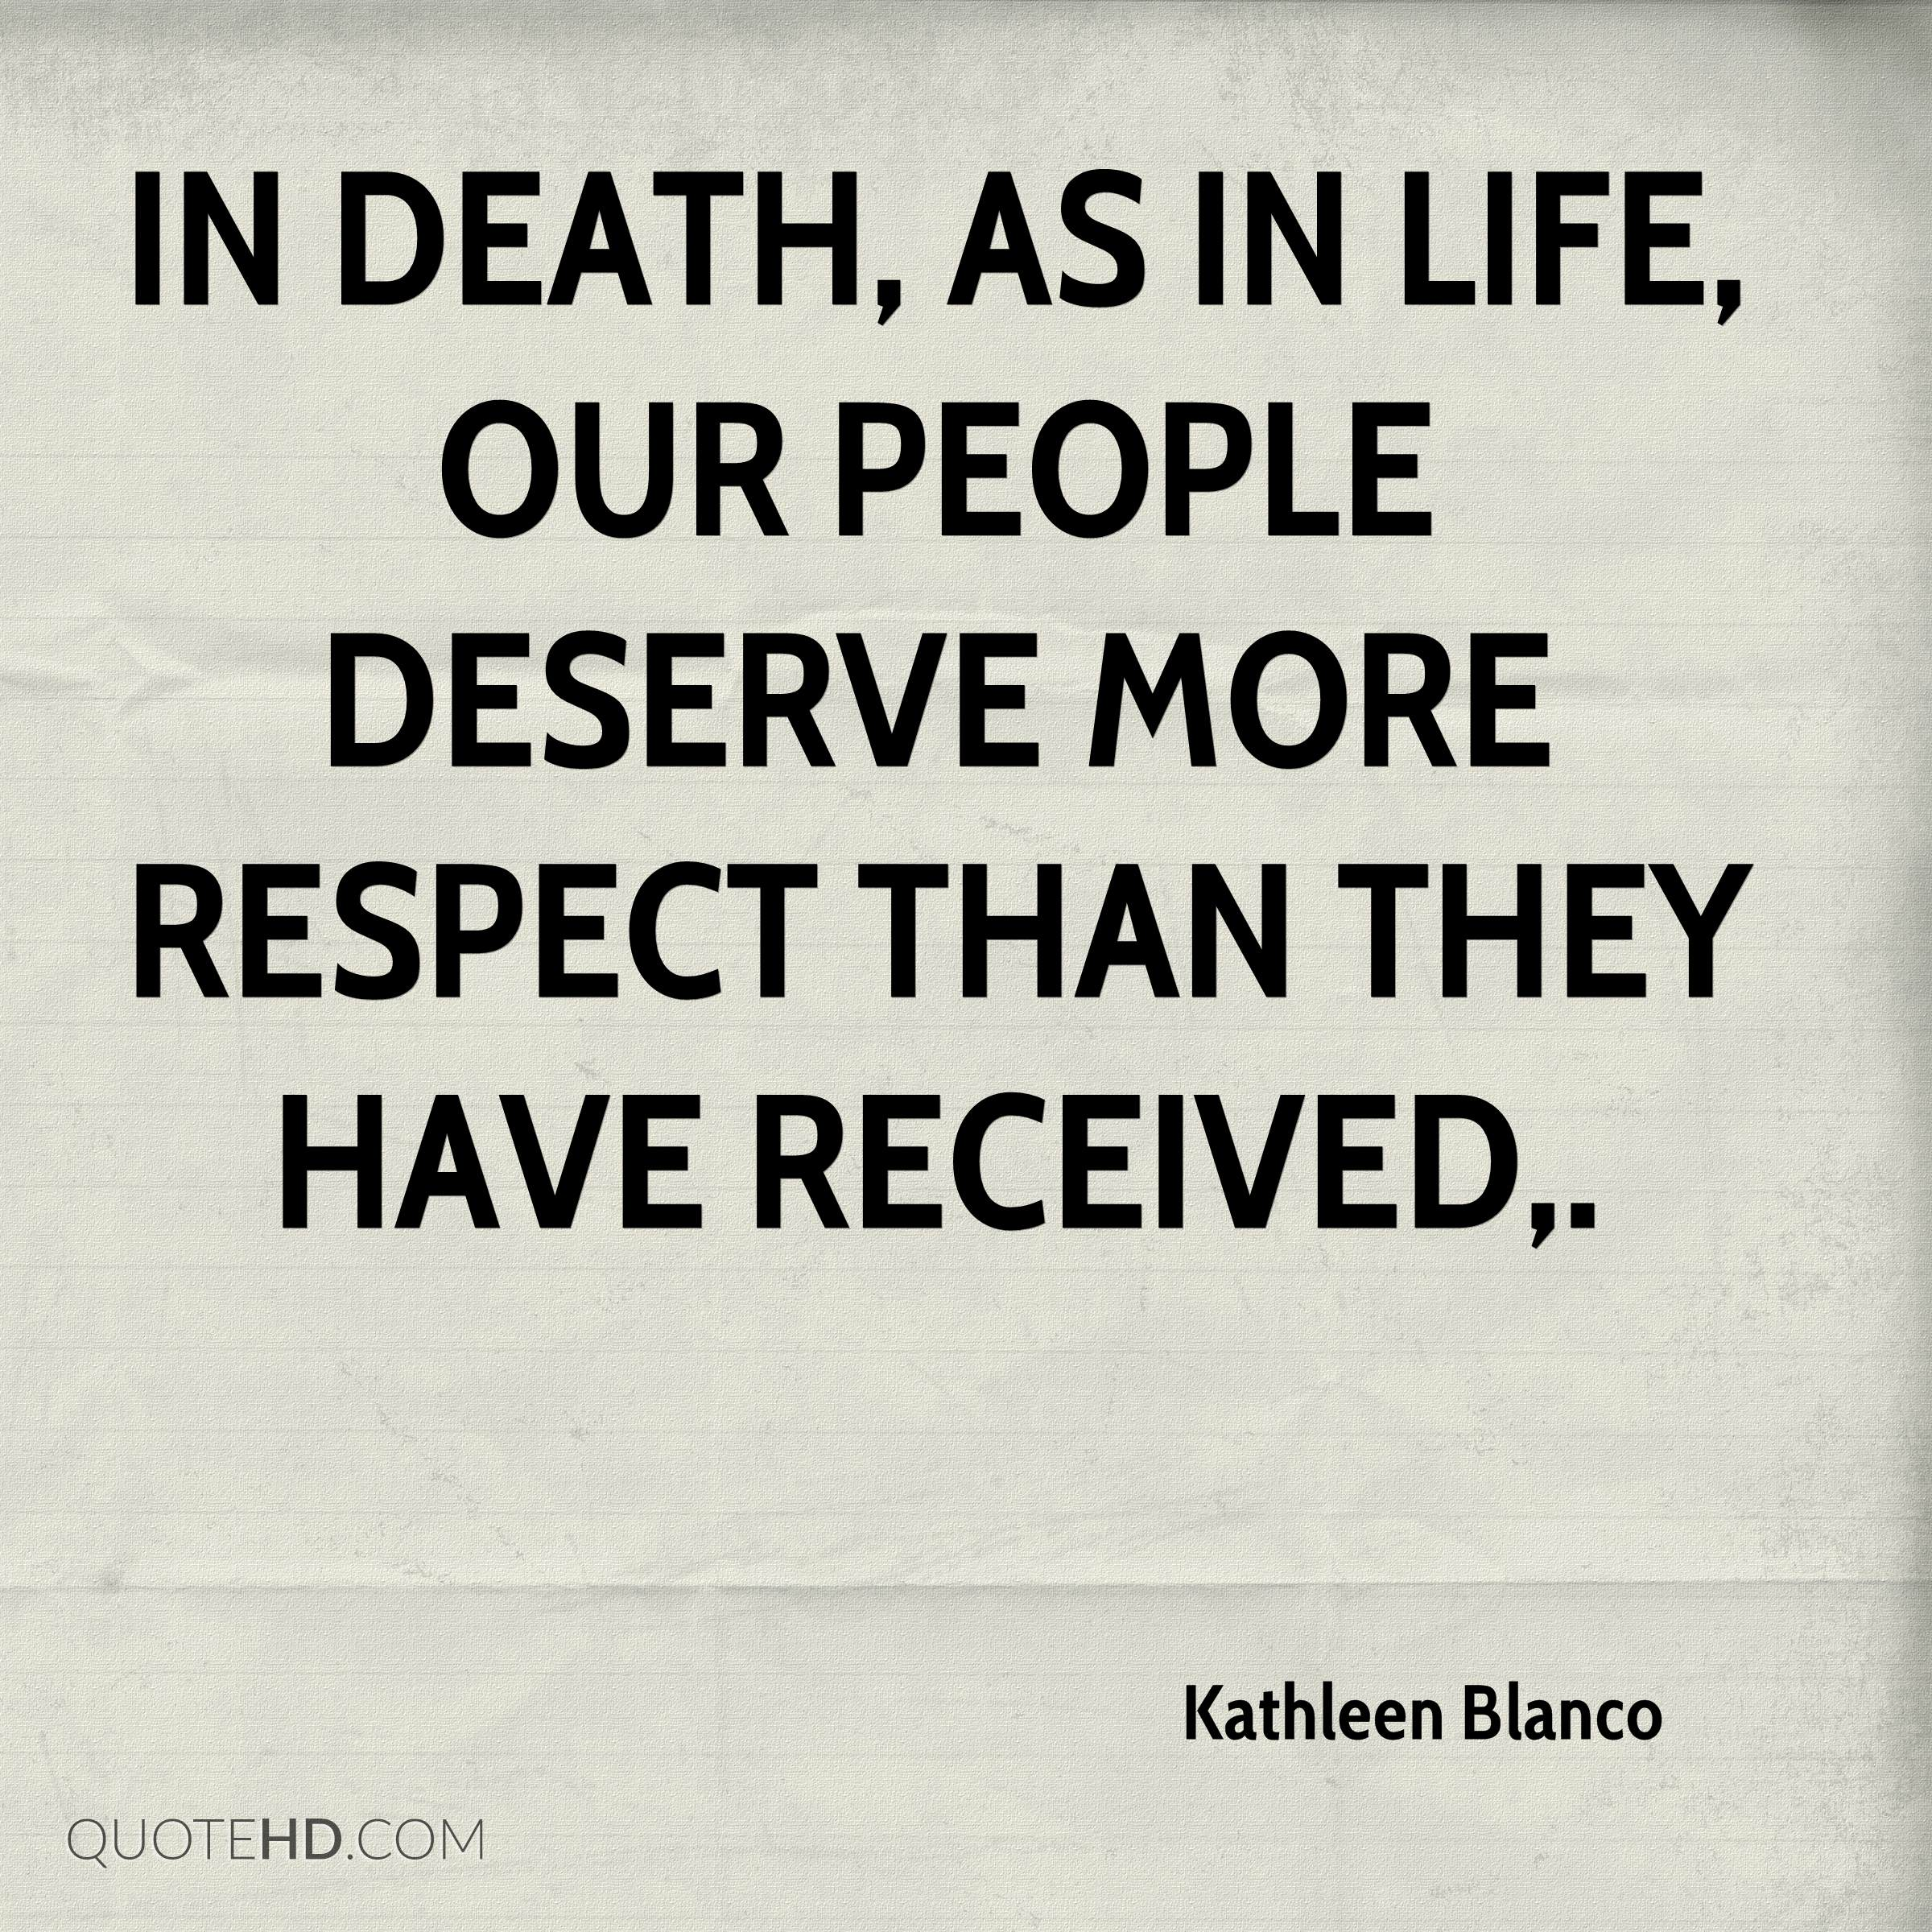 Quotes About Death And Life Kathleen Blanco Death Quotes  Quotehd